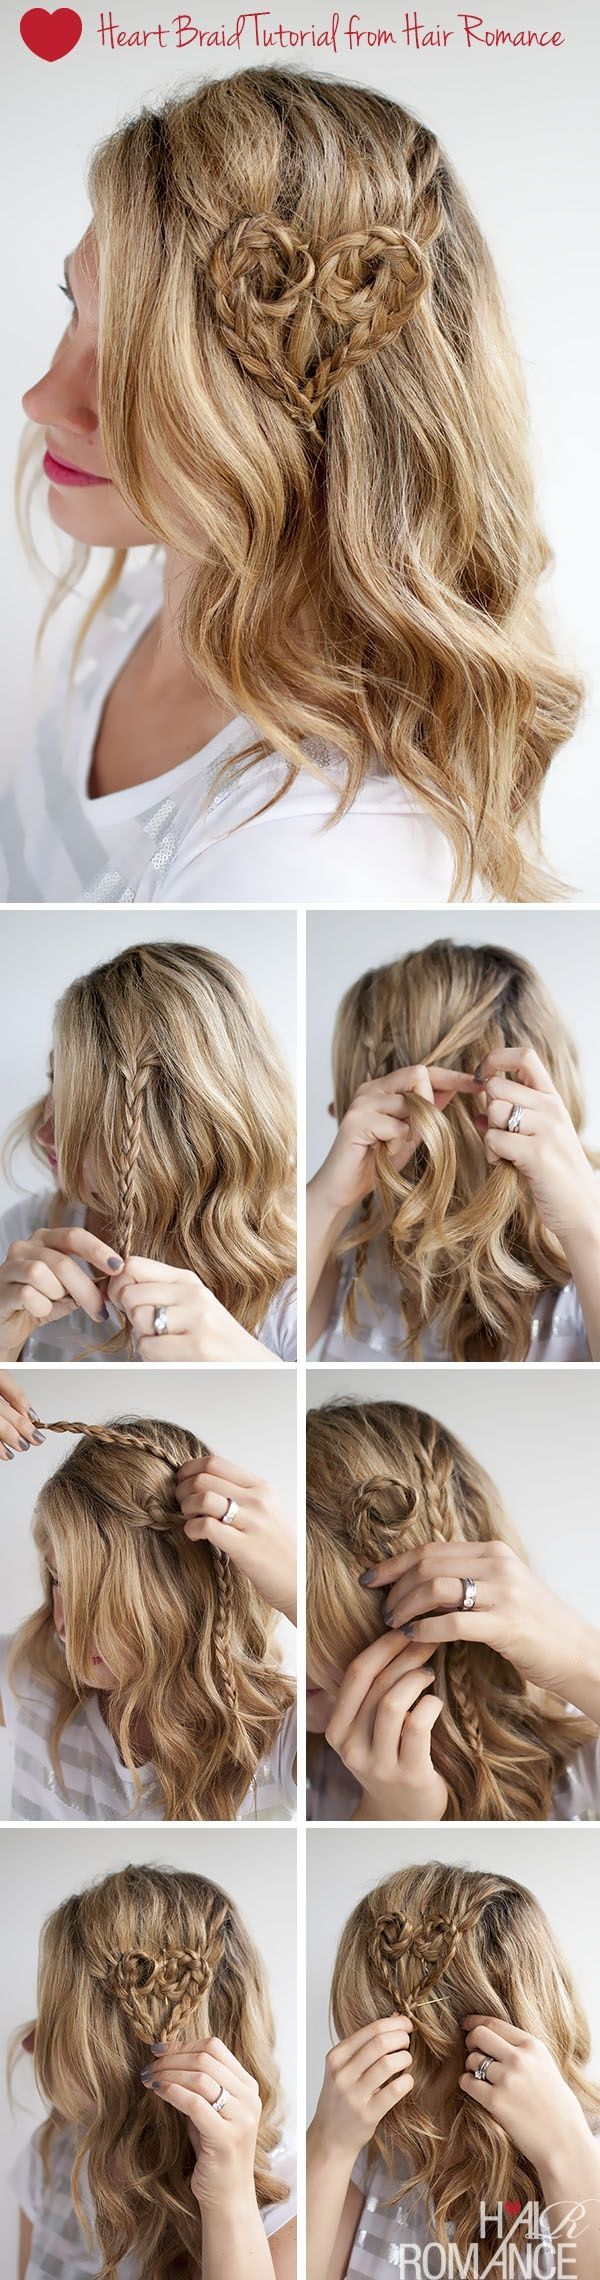 Valentine's Hair - Heart Braid. i feel like i could maybe even do this with my short hair...